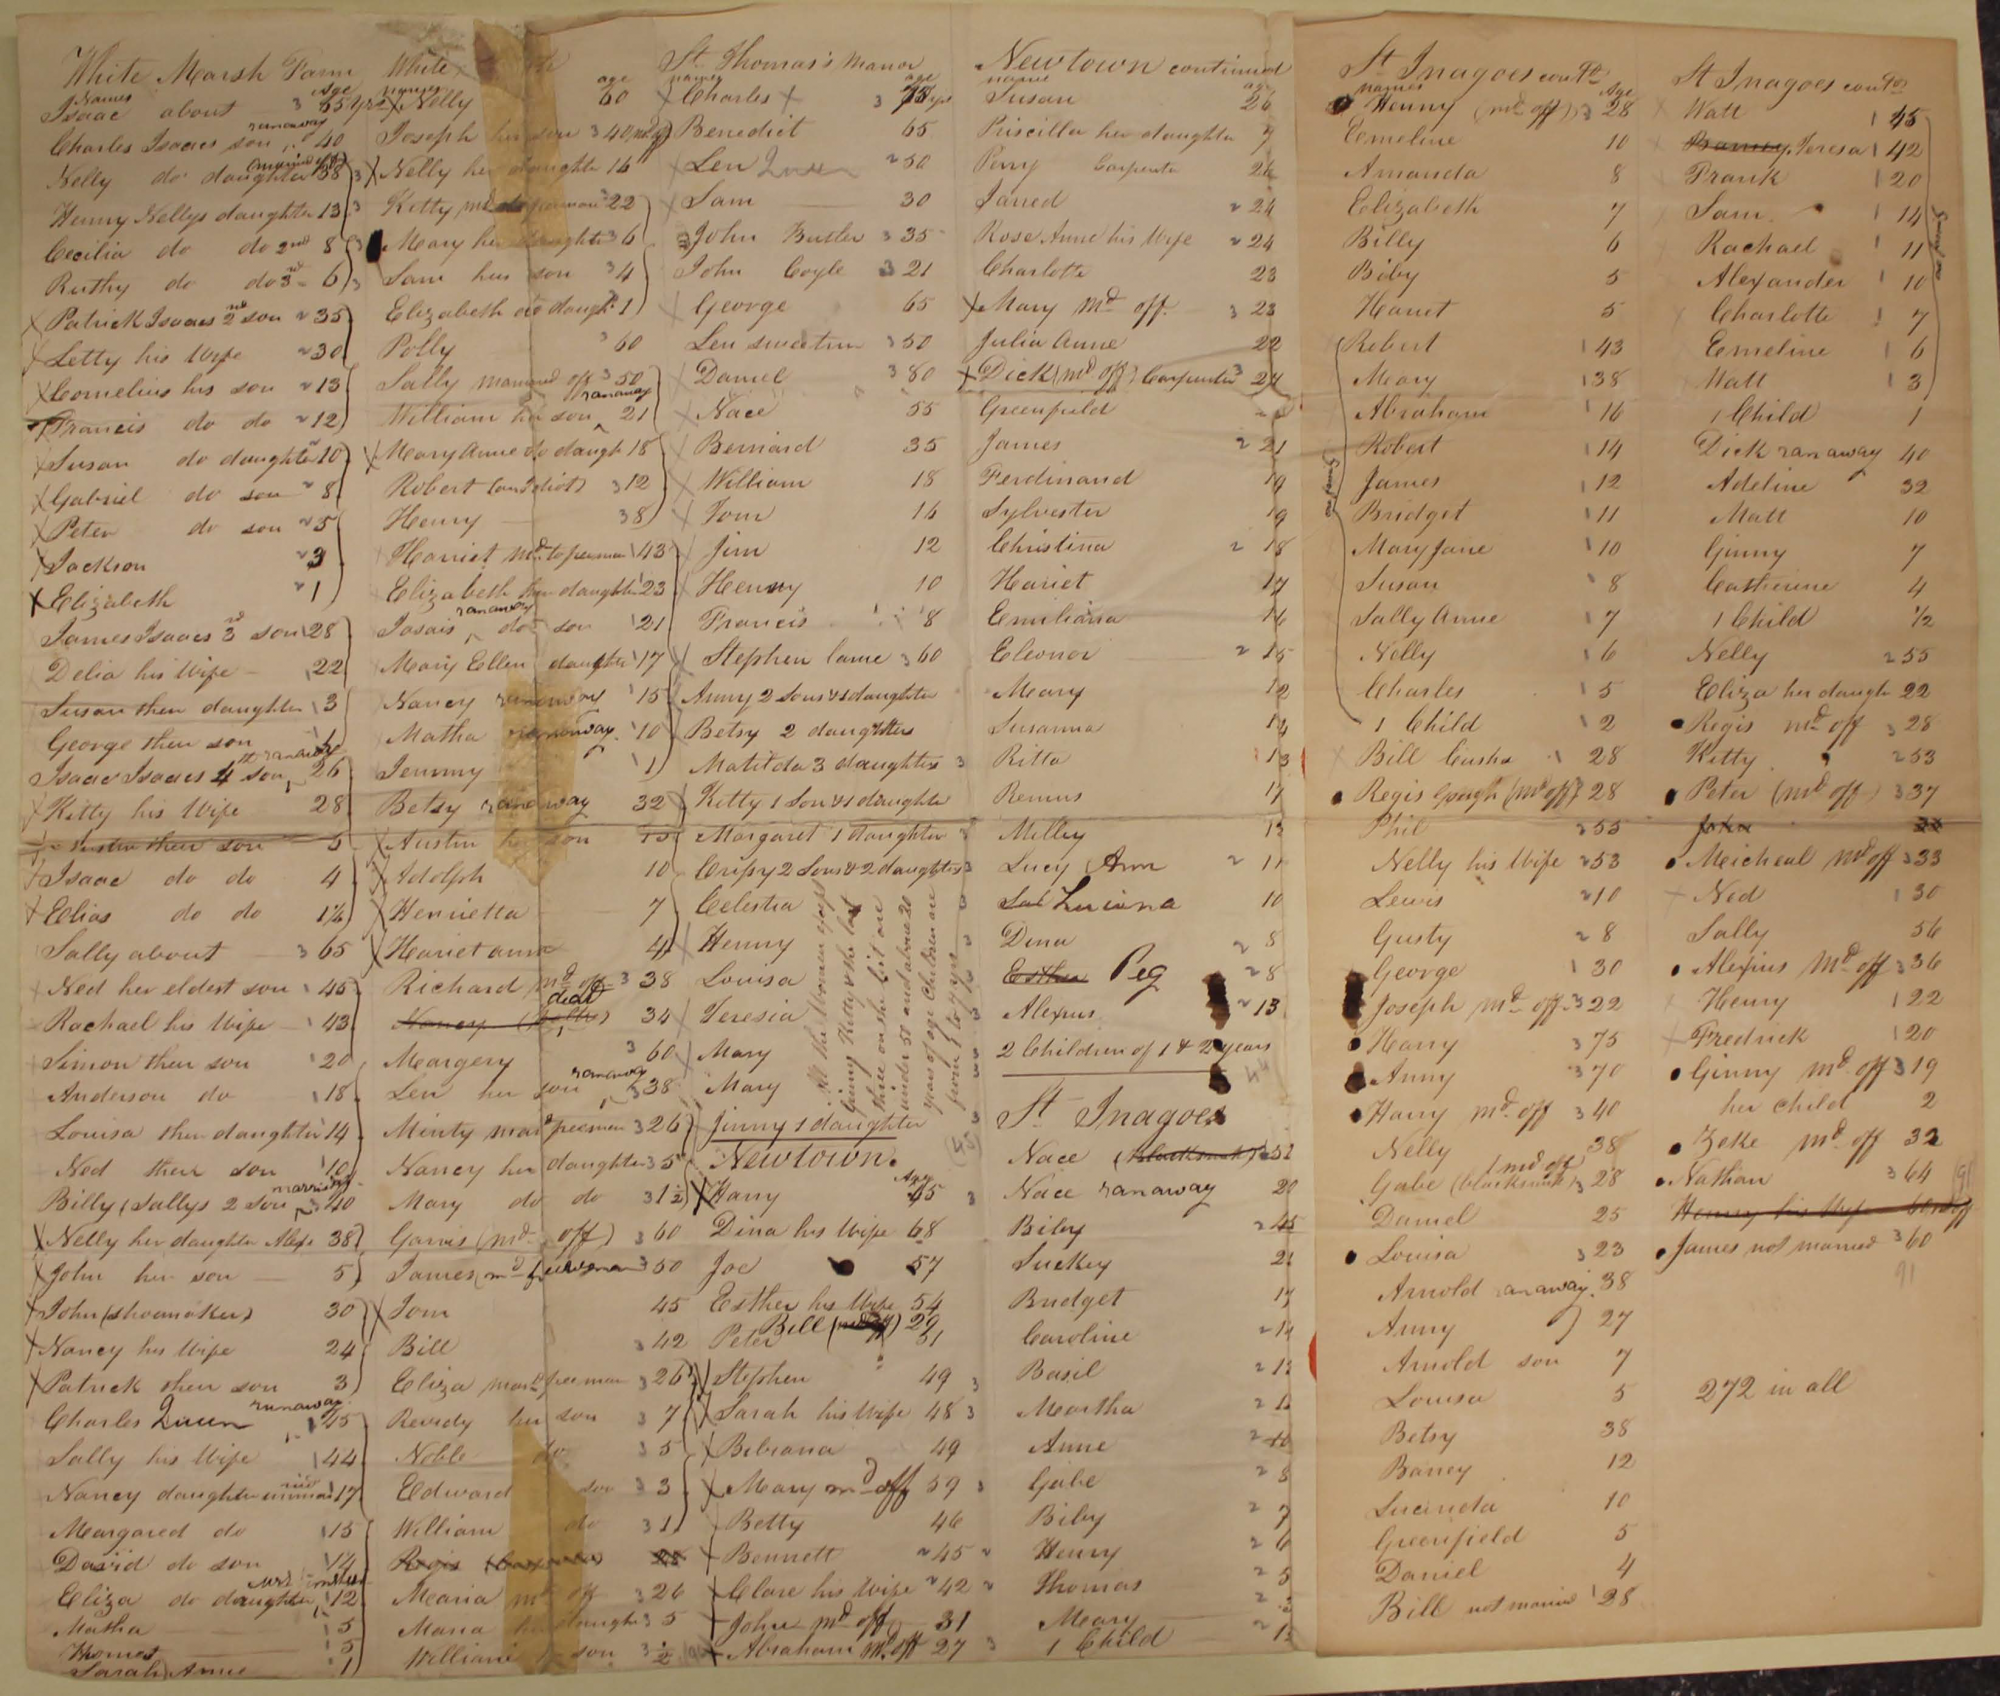 photo of Georgetown's 1838 Census of enslaved to be sold